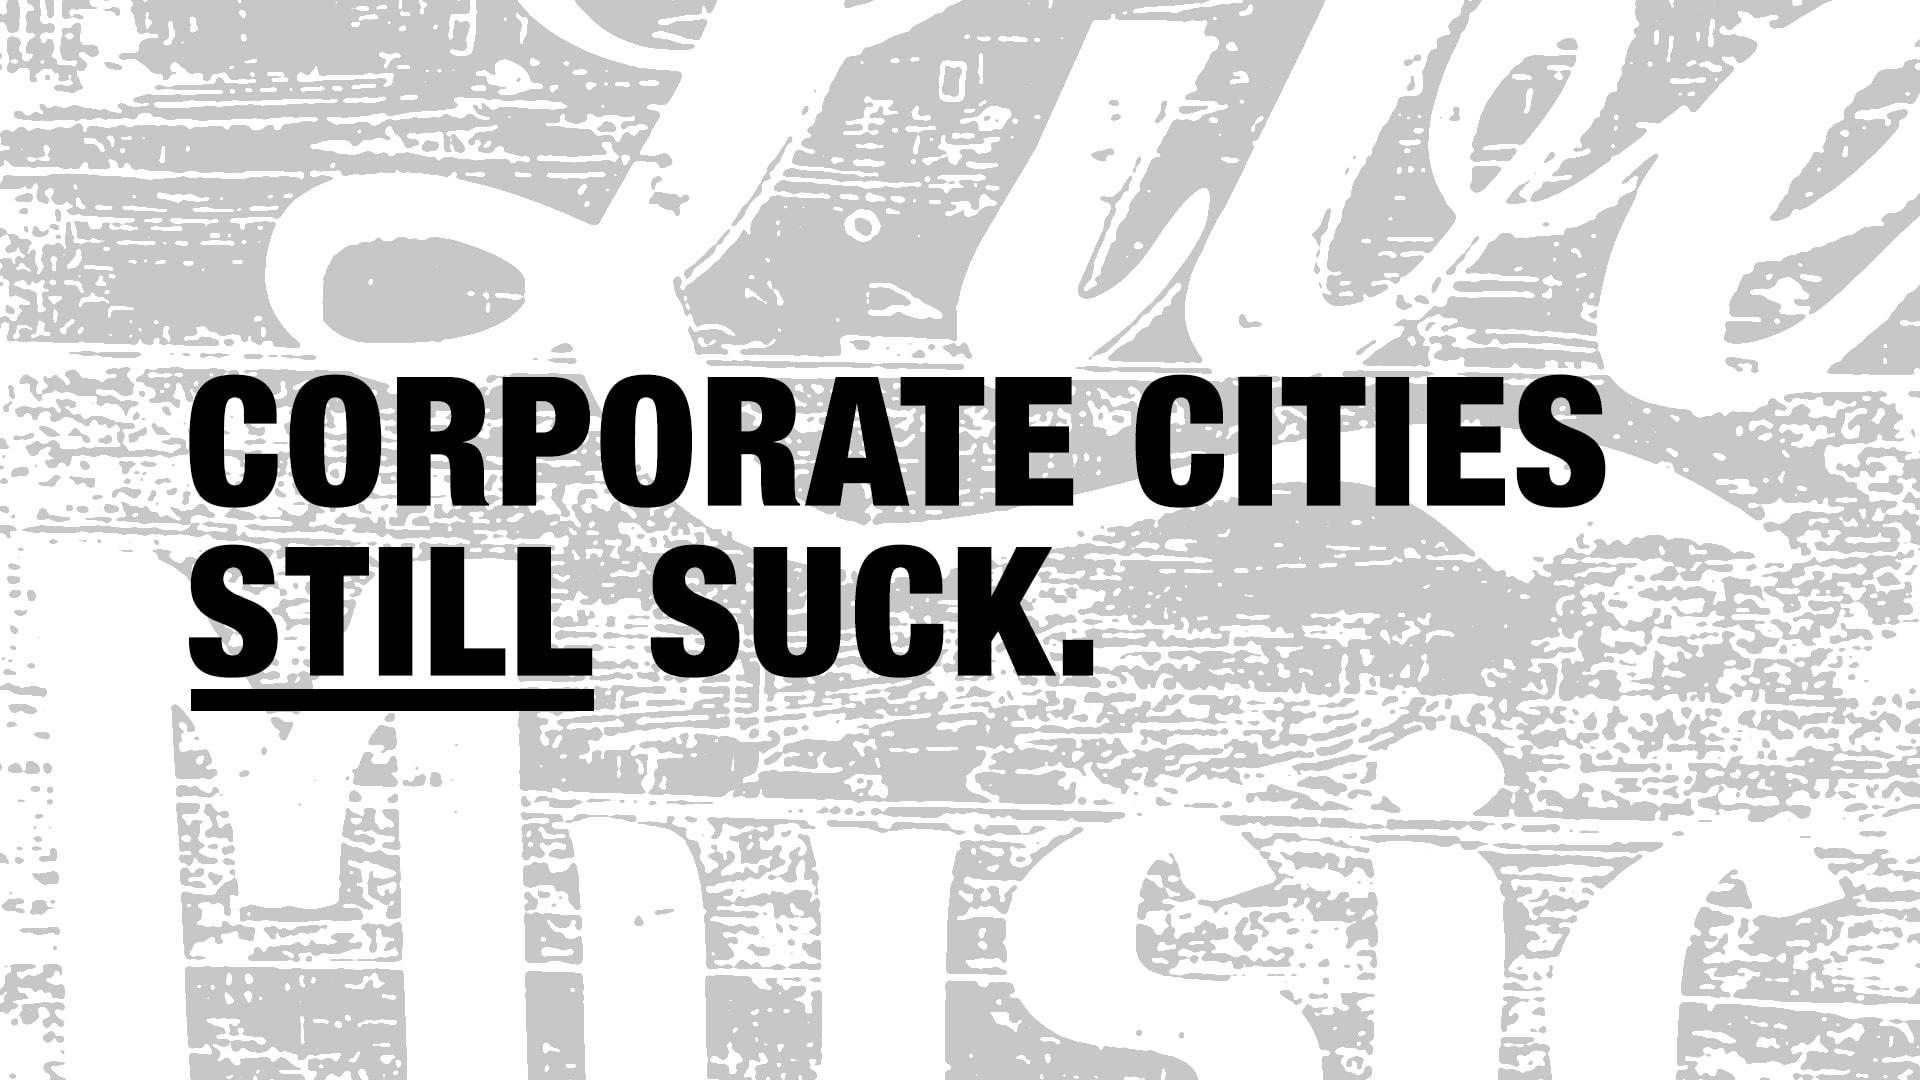 Corporate cities still suck